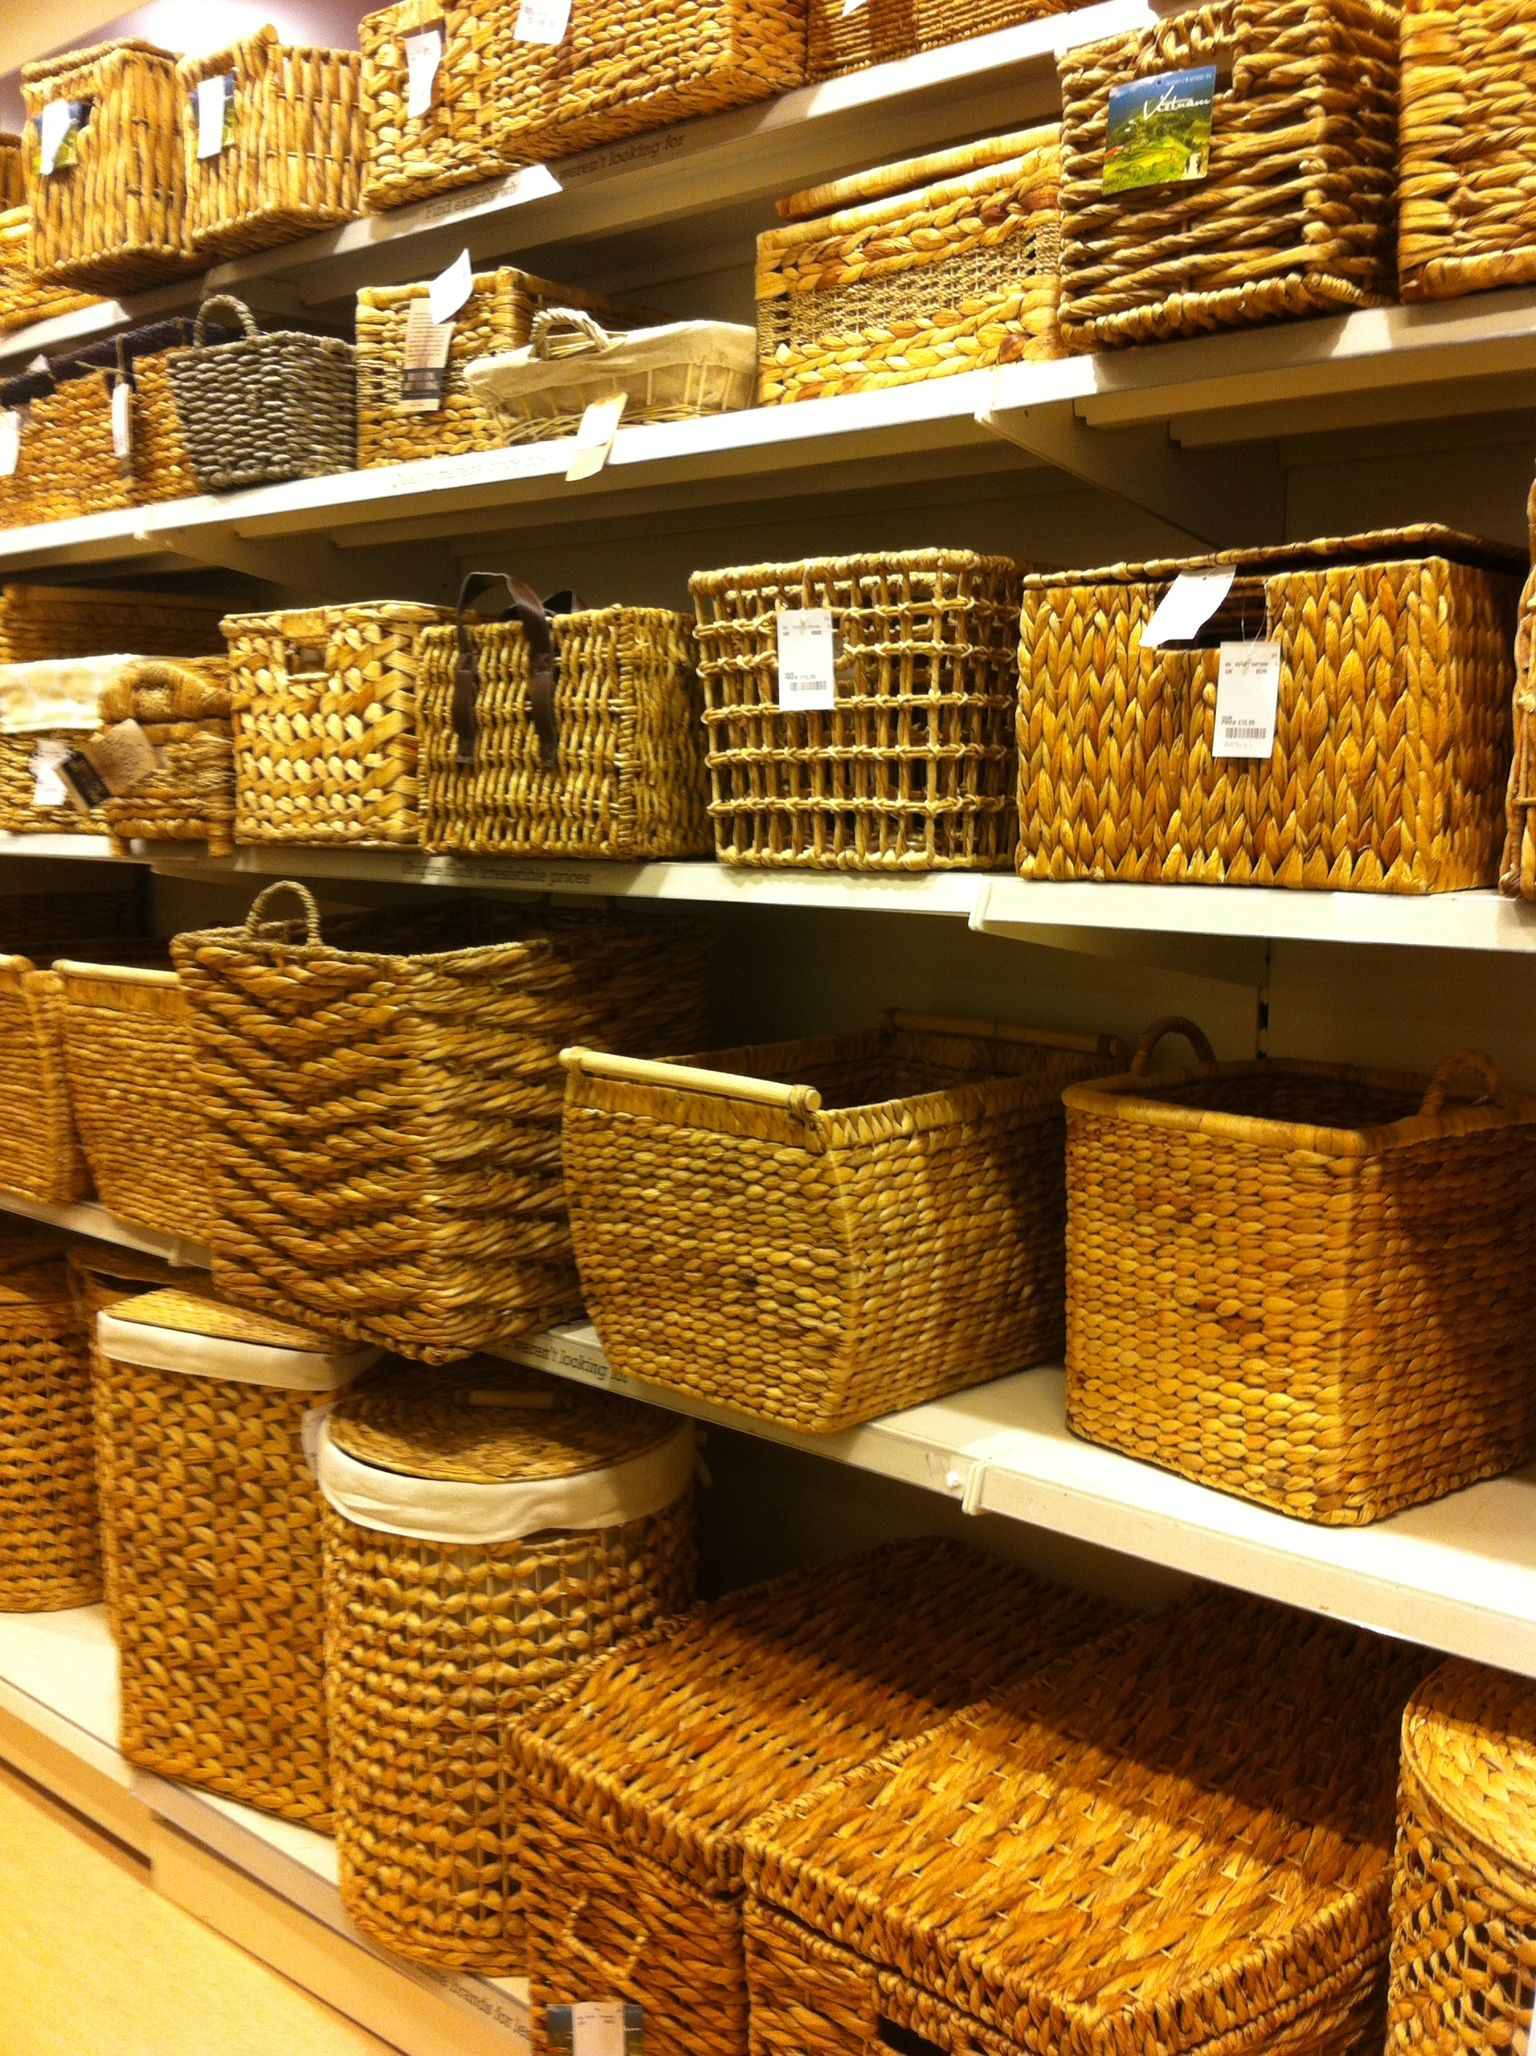 Can't go wrong with wicker baskets... TKMaxx / Homesense